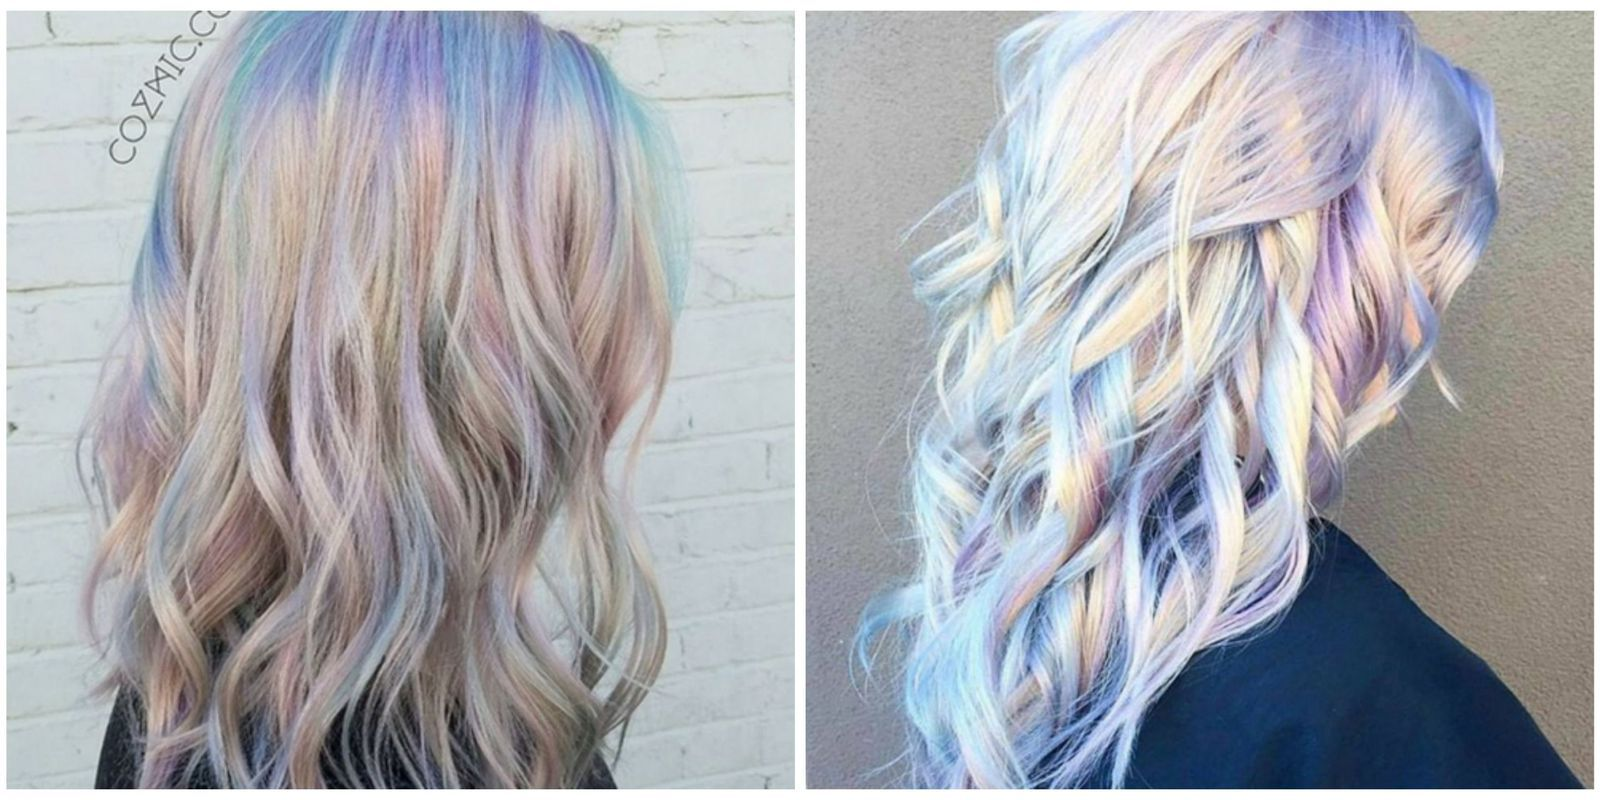 Holographic hair is the latest trend to take over instagram